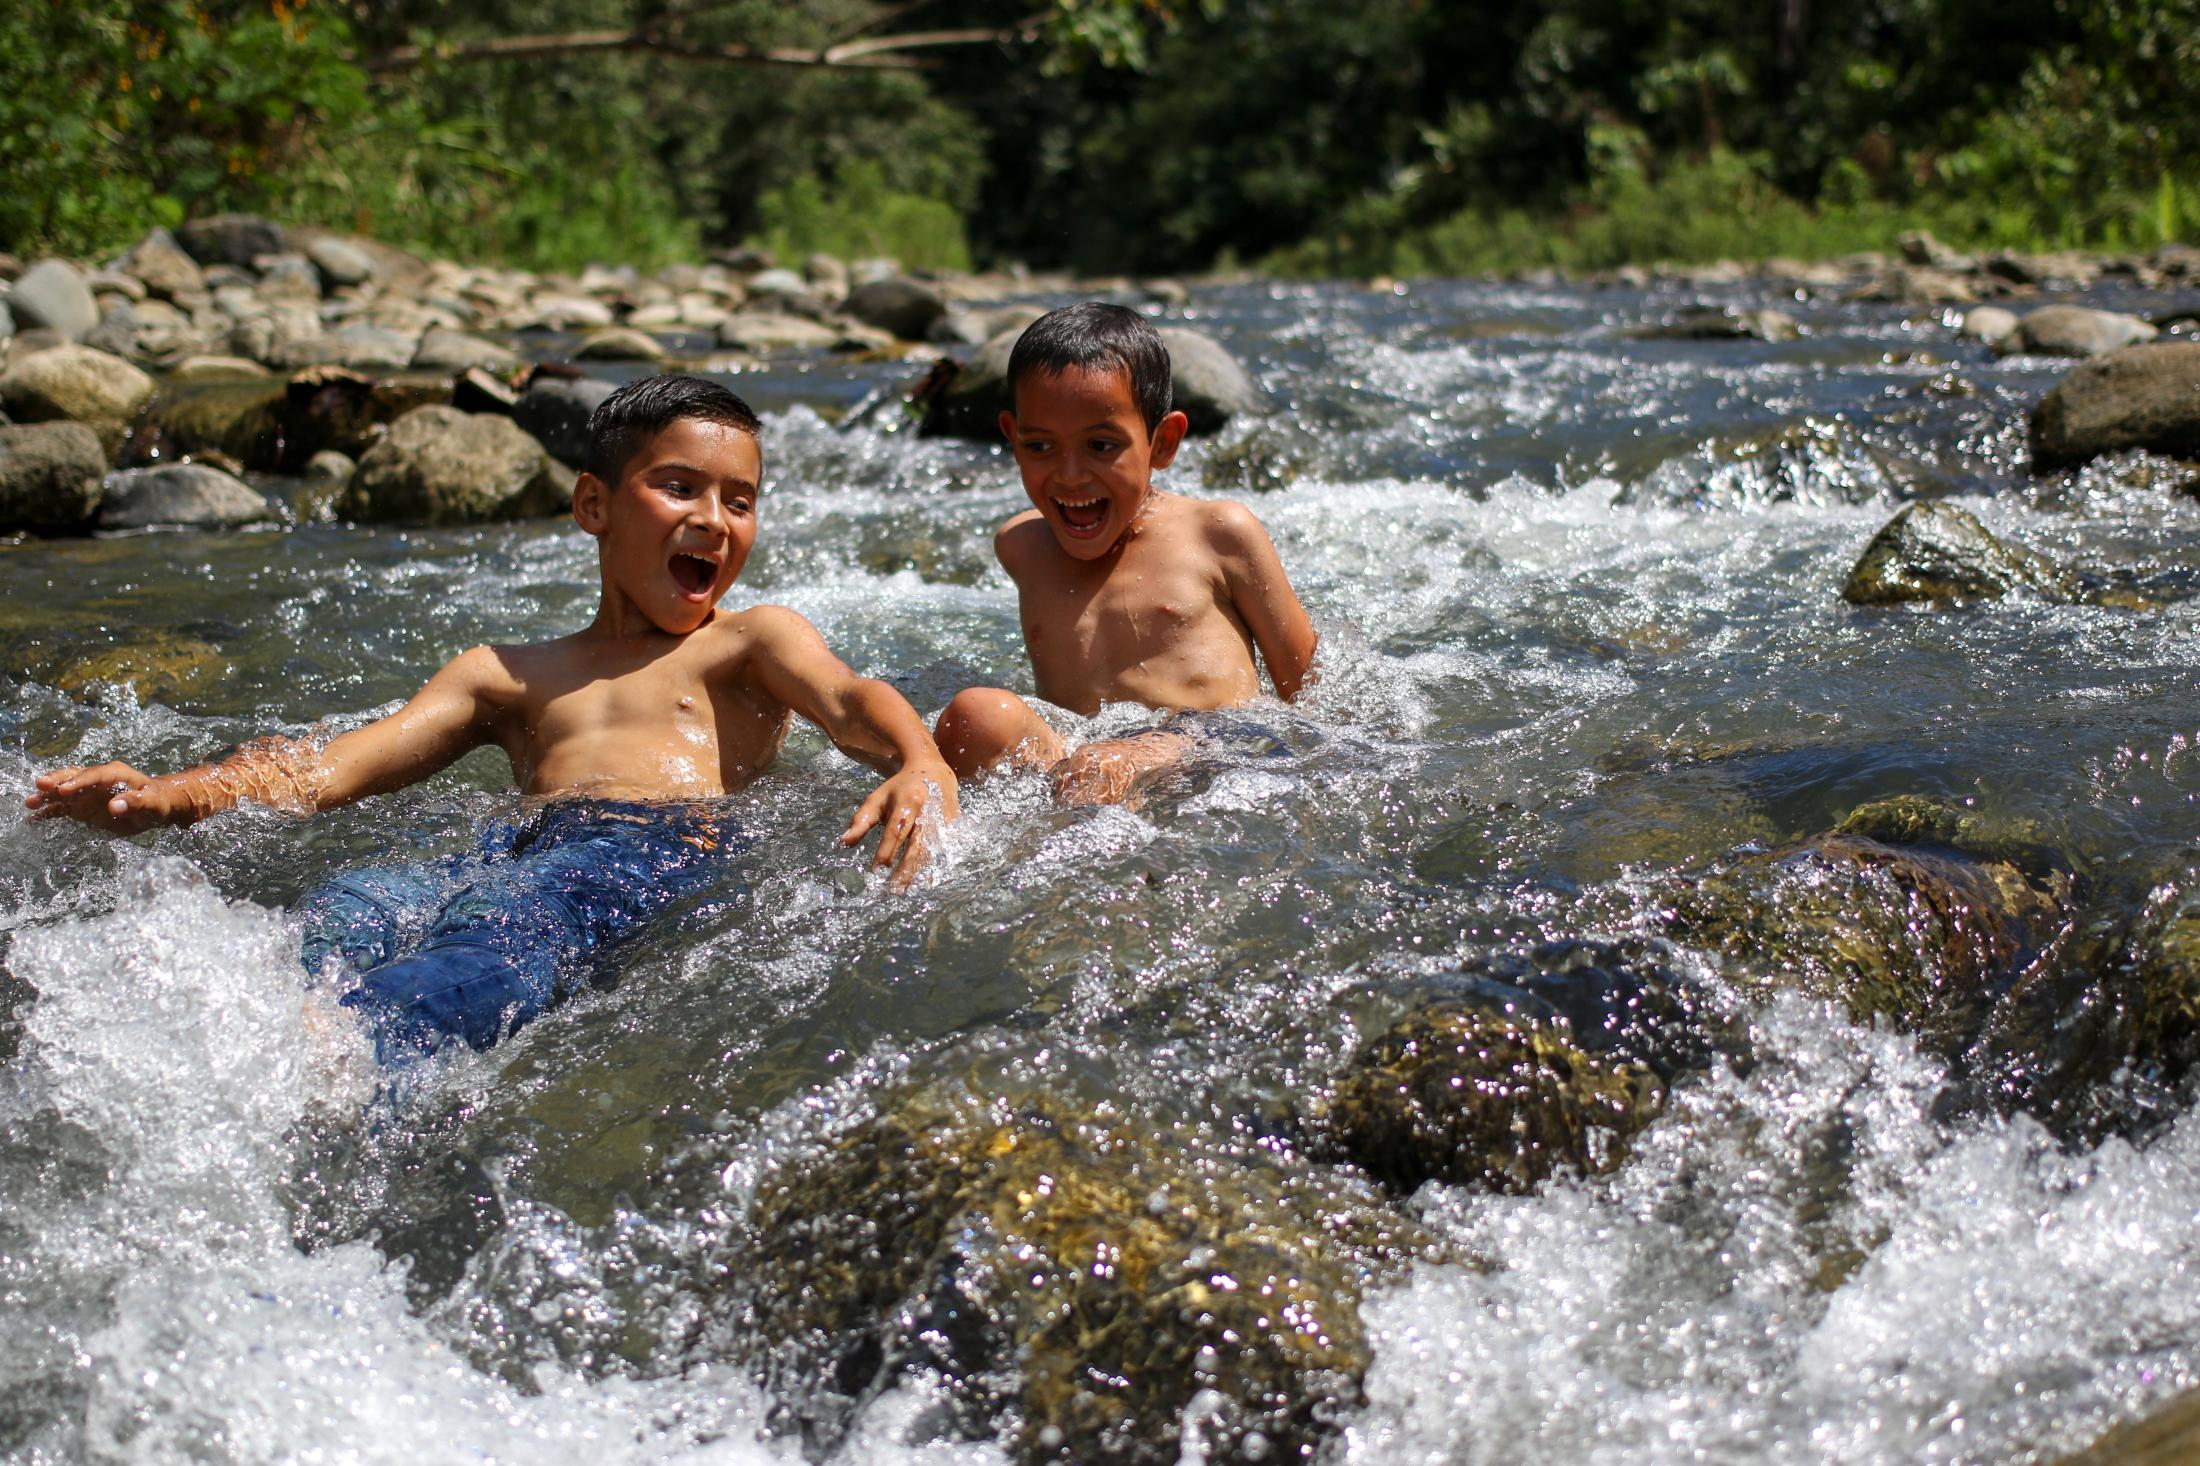 Rivers are as important as the forest themselves. Rio Tigre river where these kids are having fun used to be heavily mined for gold. It runs from the heart of Corcovado National Park into the ocean. Thanks to heavy protection and strong conservations work from the Community of Rio Tigre, gold mining has decreased. and the river is recovering.